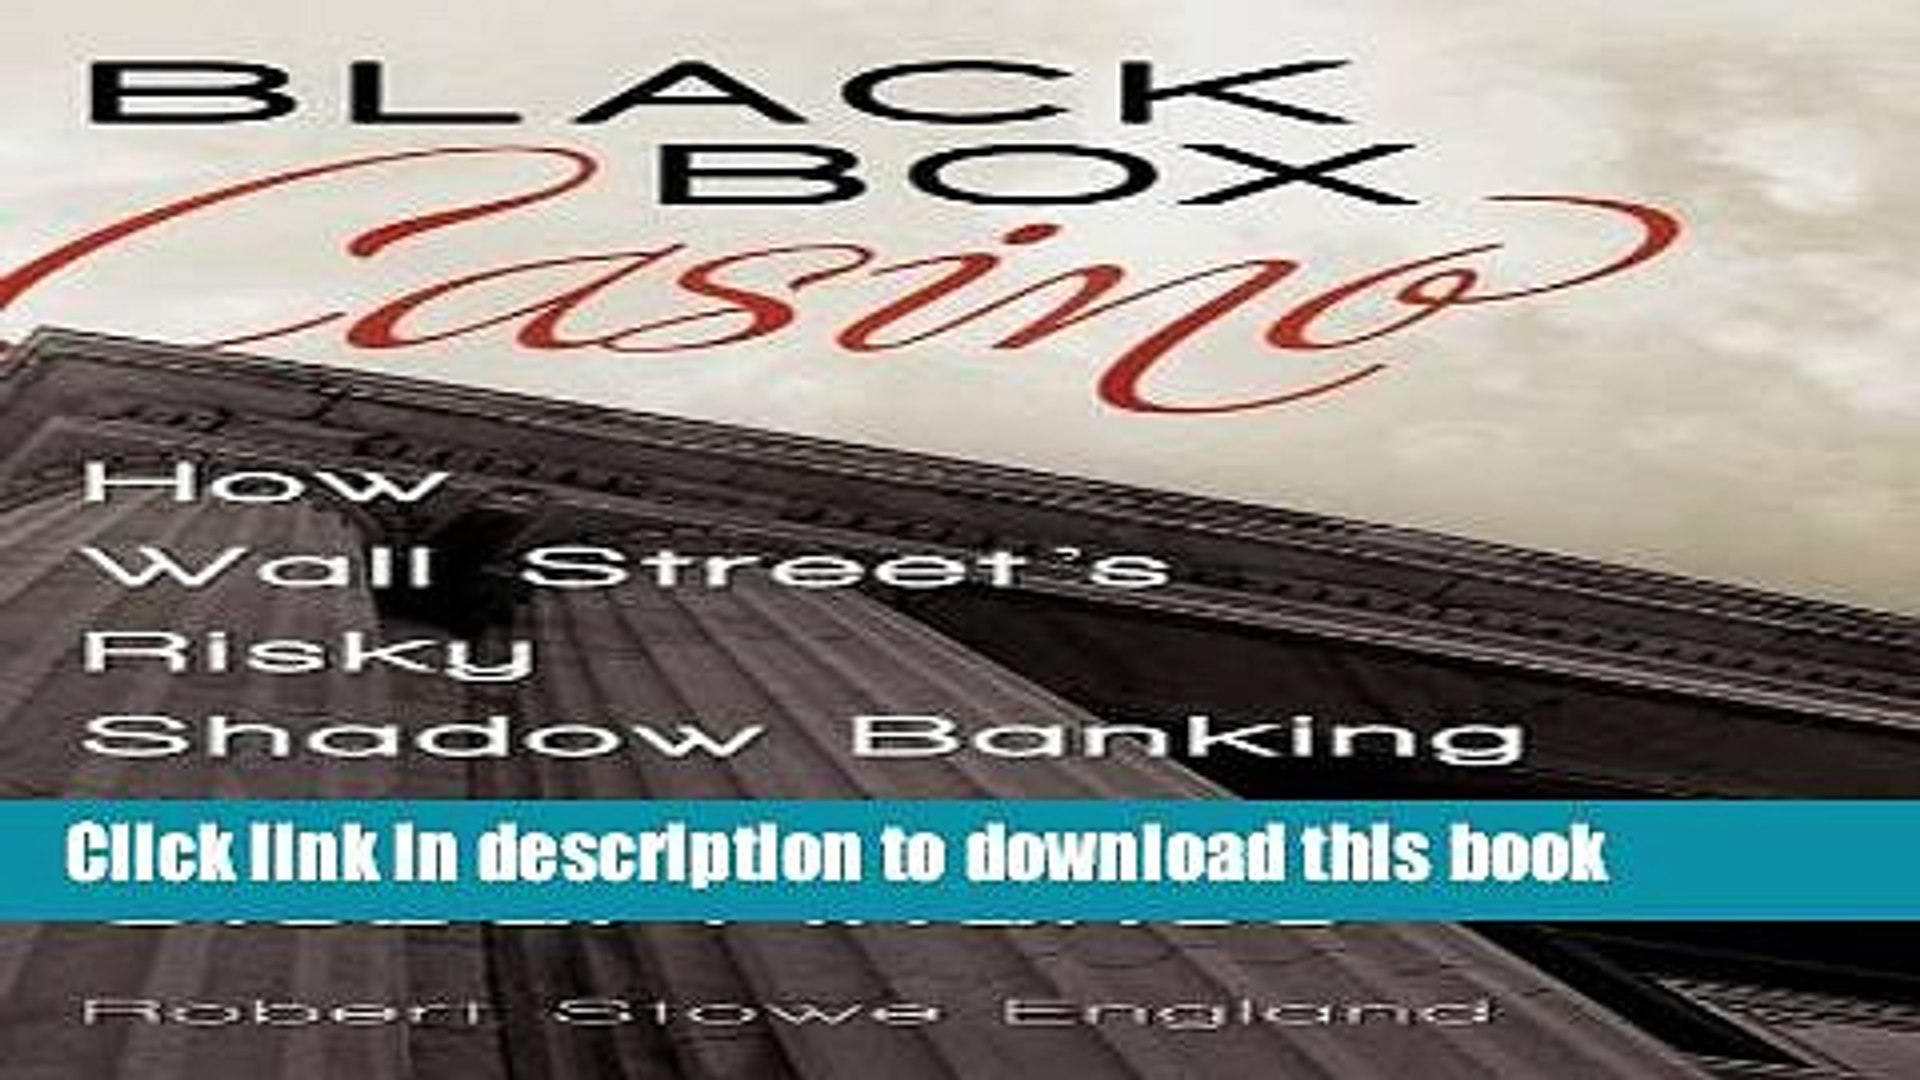 Books Black Box Casino: How Wall Street s Risky Shadow Banking Crashed Global Finance Free Online